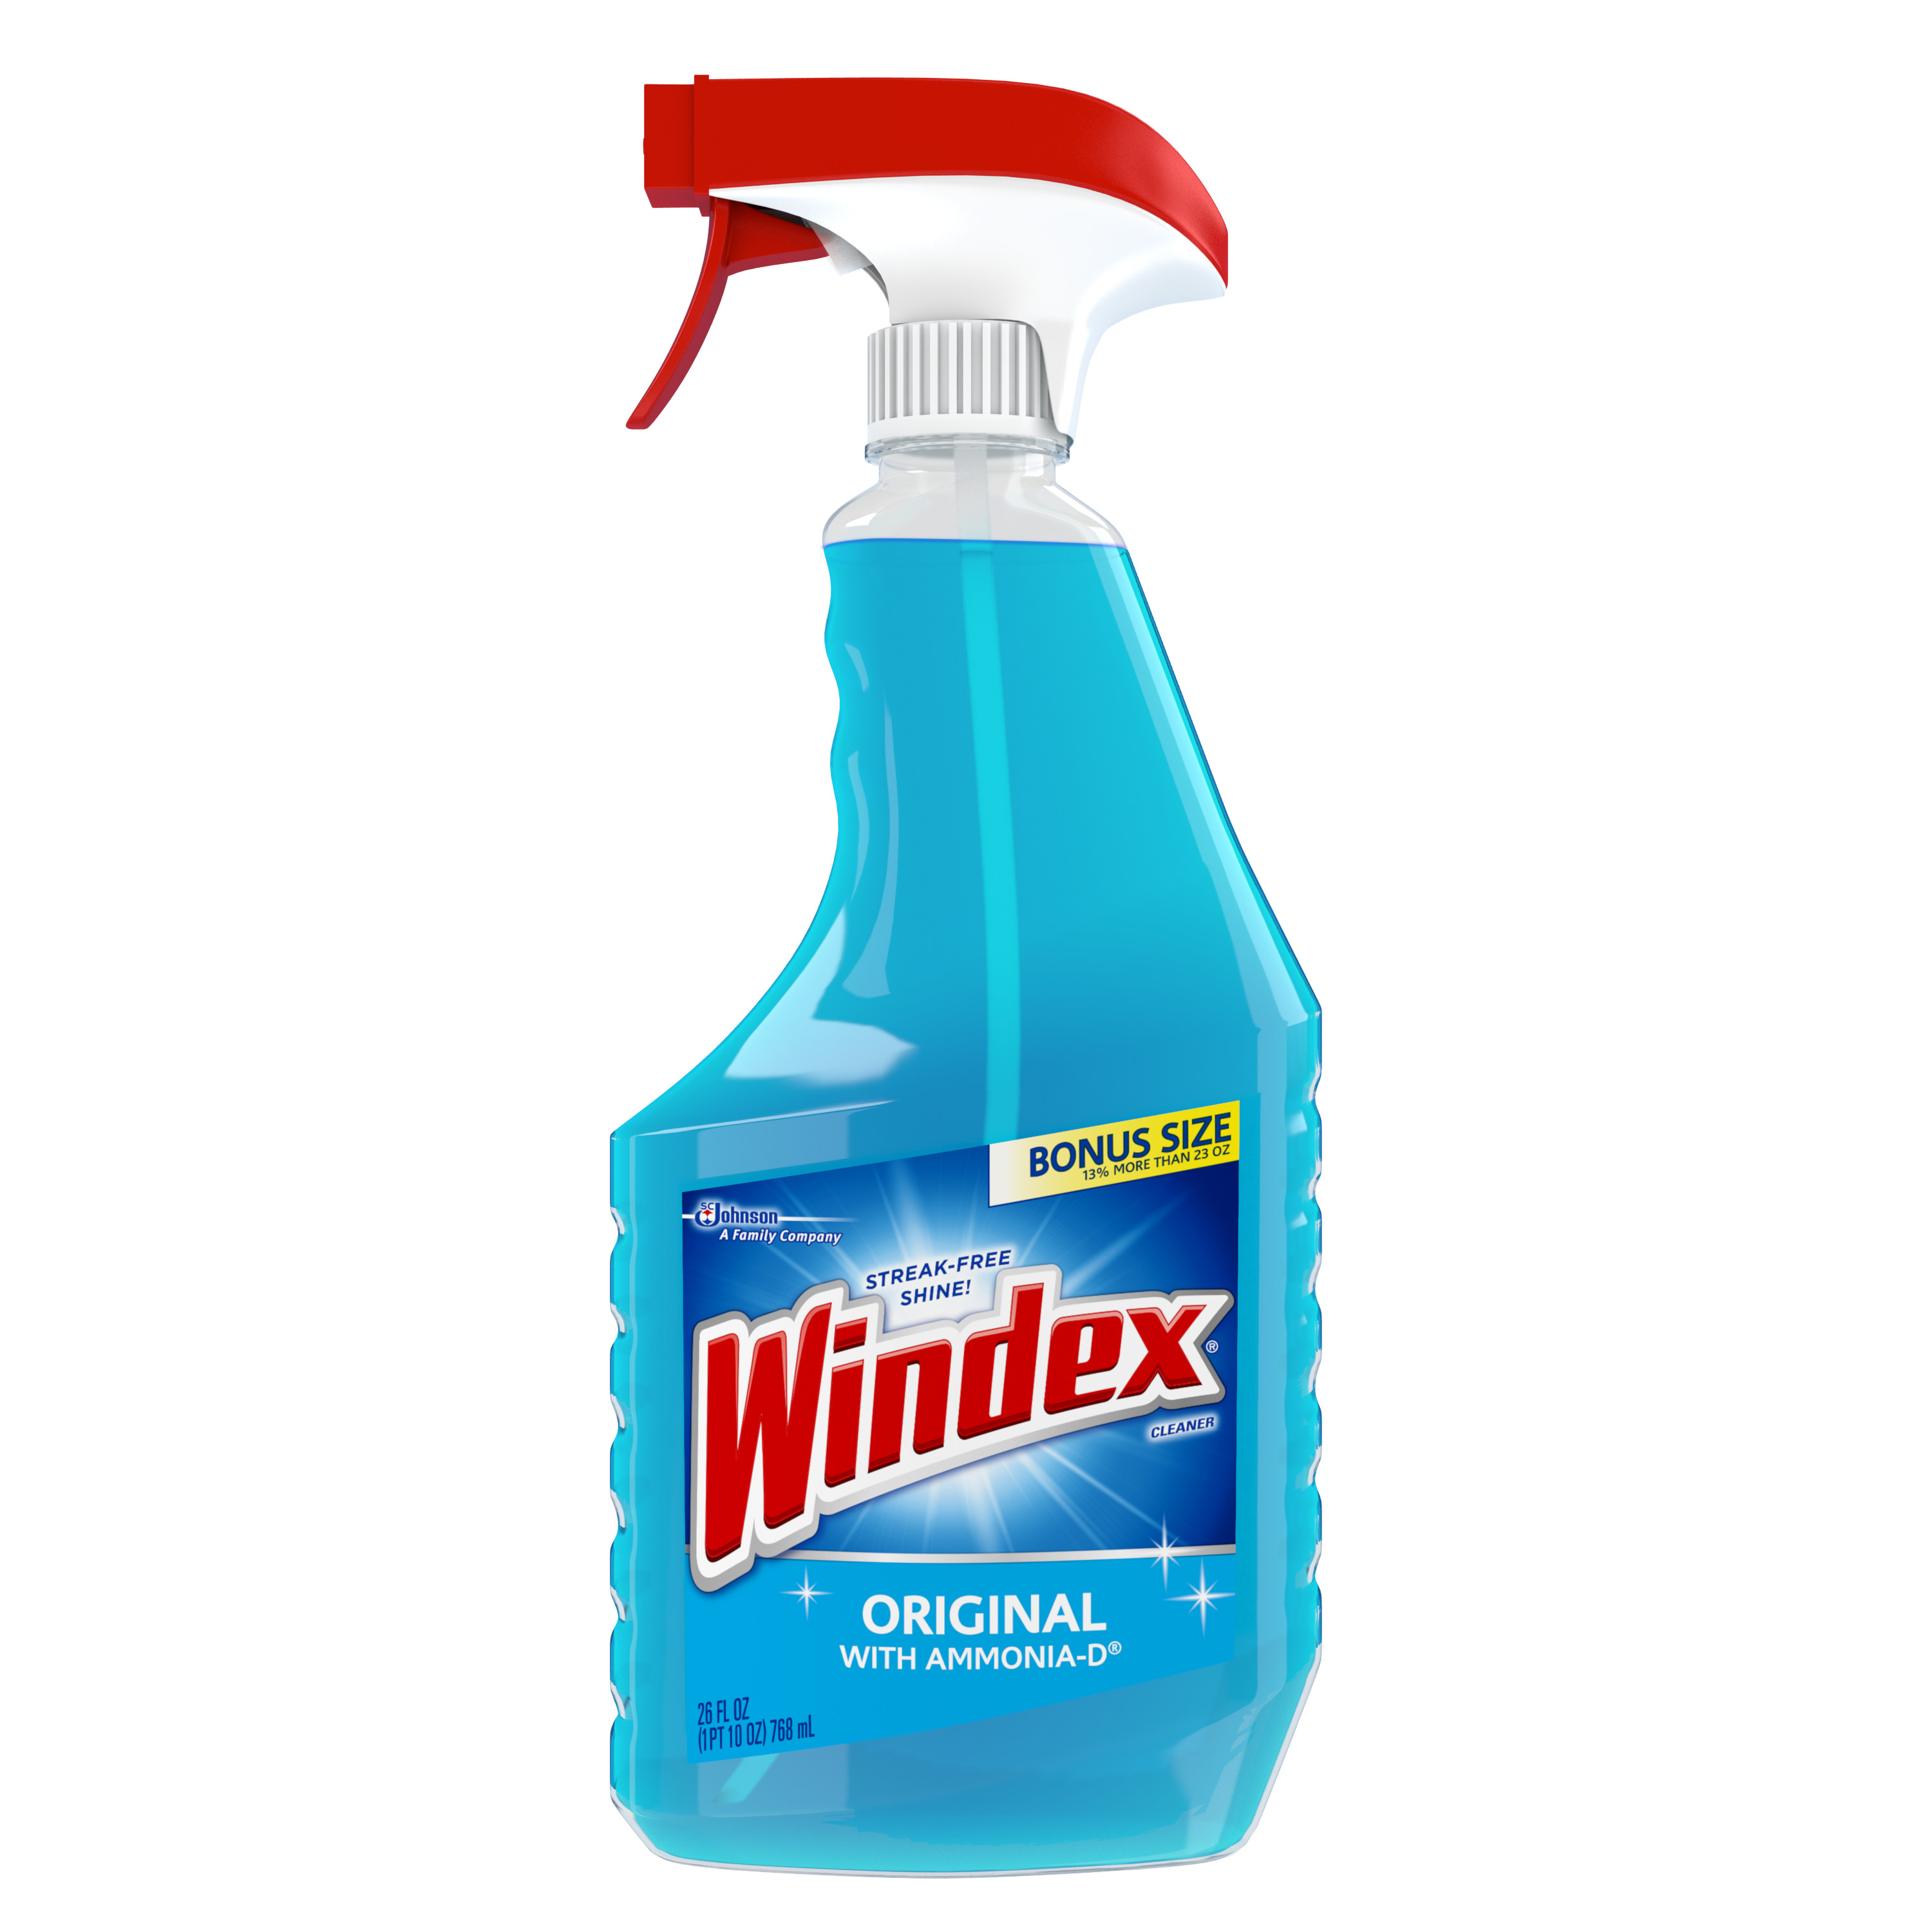 Windex Original Glass Cleaner Trigger 26 Fluid Ounces